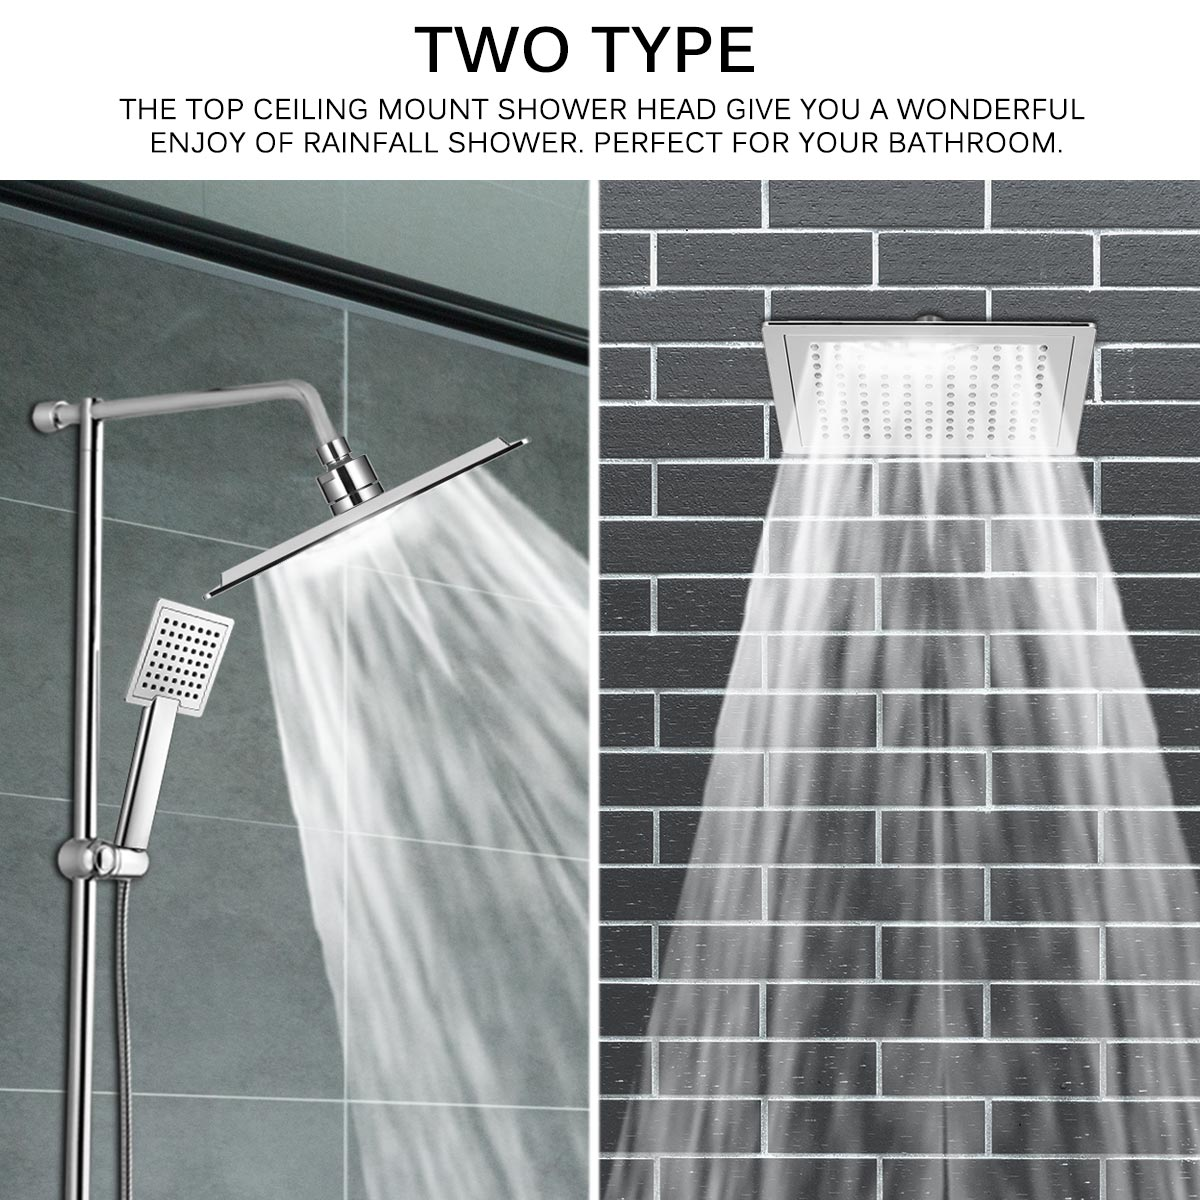 Us 14 89 40 Off 22 22cm Showerheads 12 Inch Square Rainfall Shower Head Ultra Thin Rain Shower Head Rain Shower Faucet Chrome Finish Square In